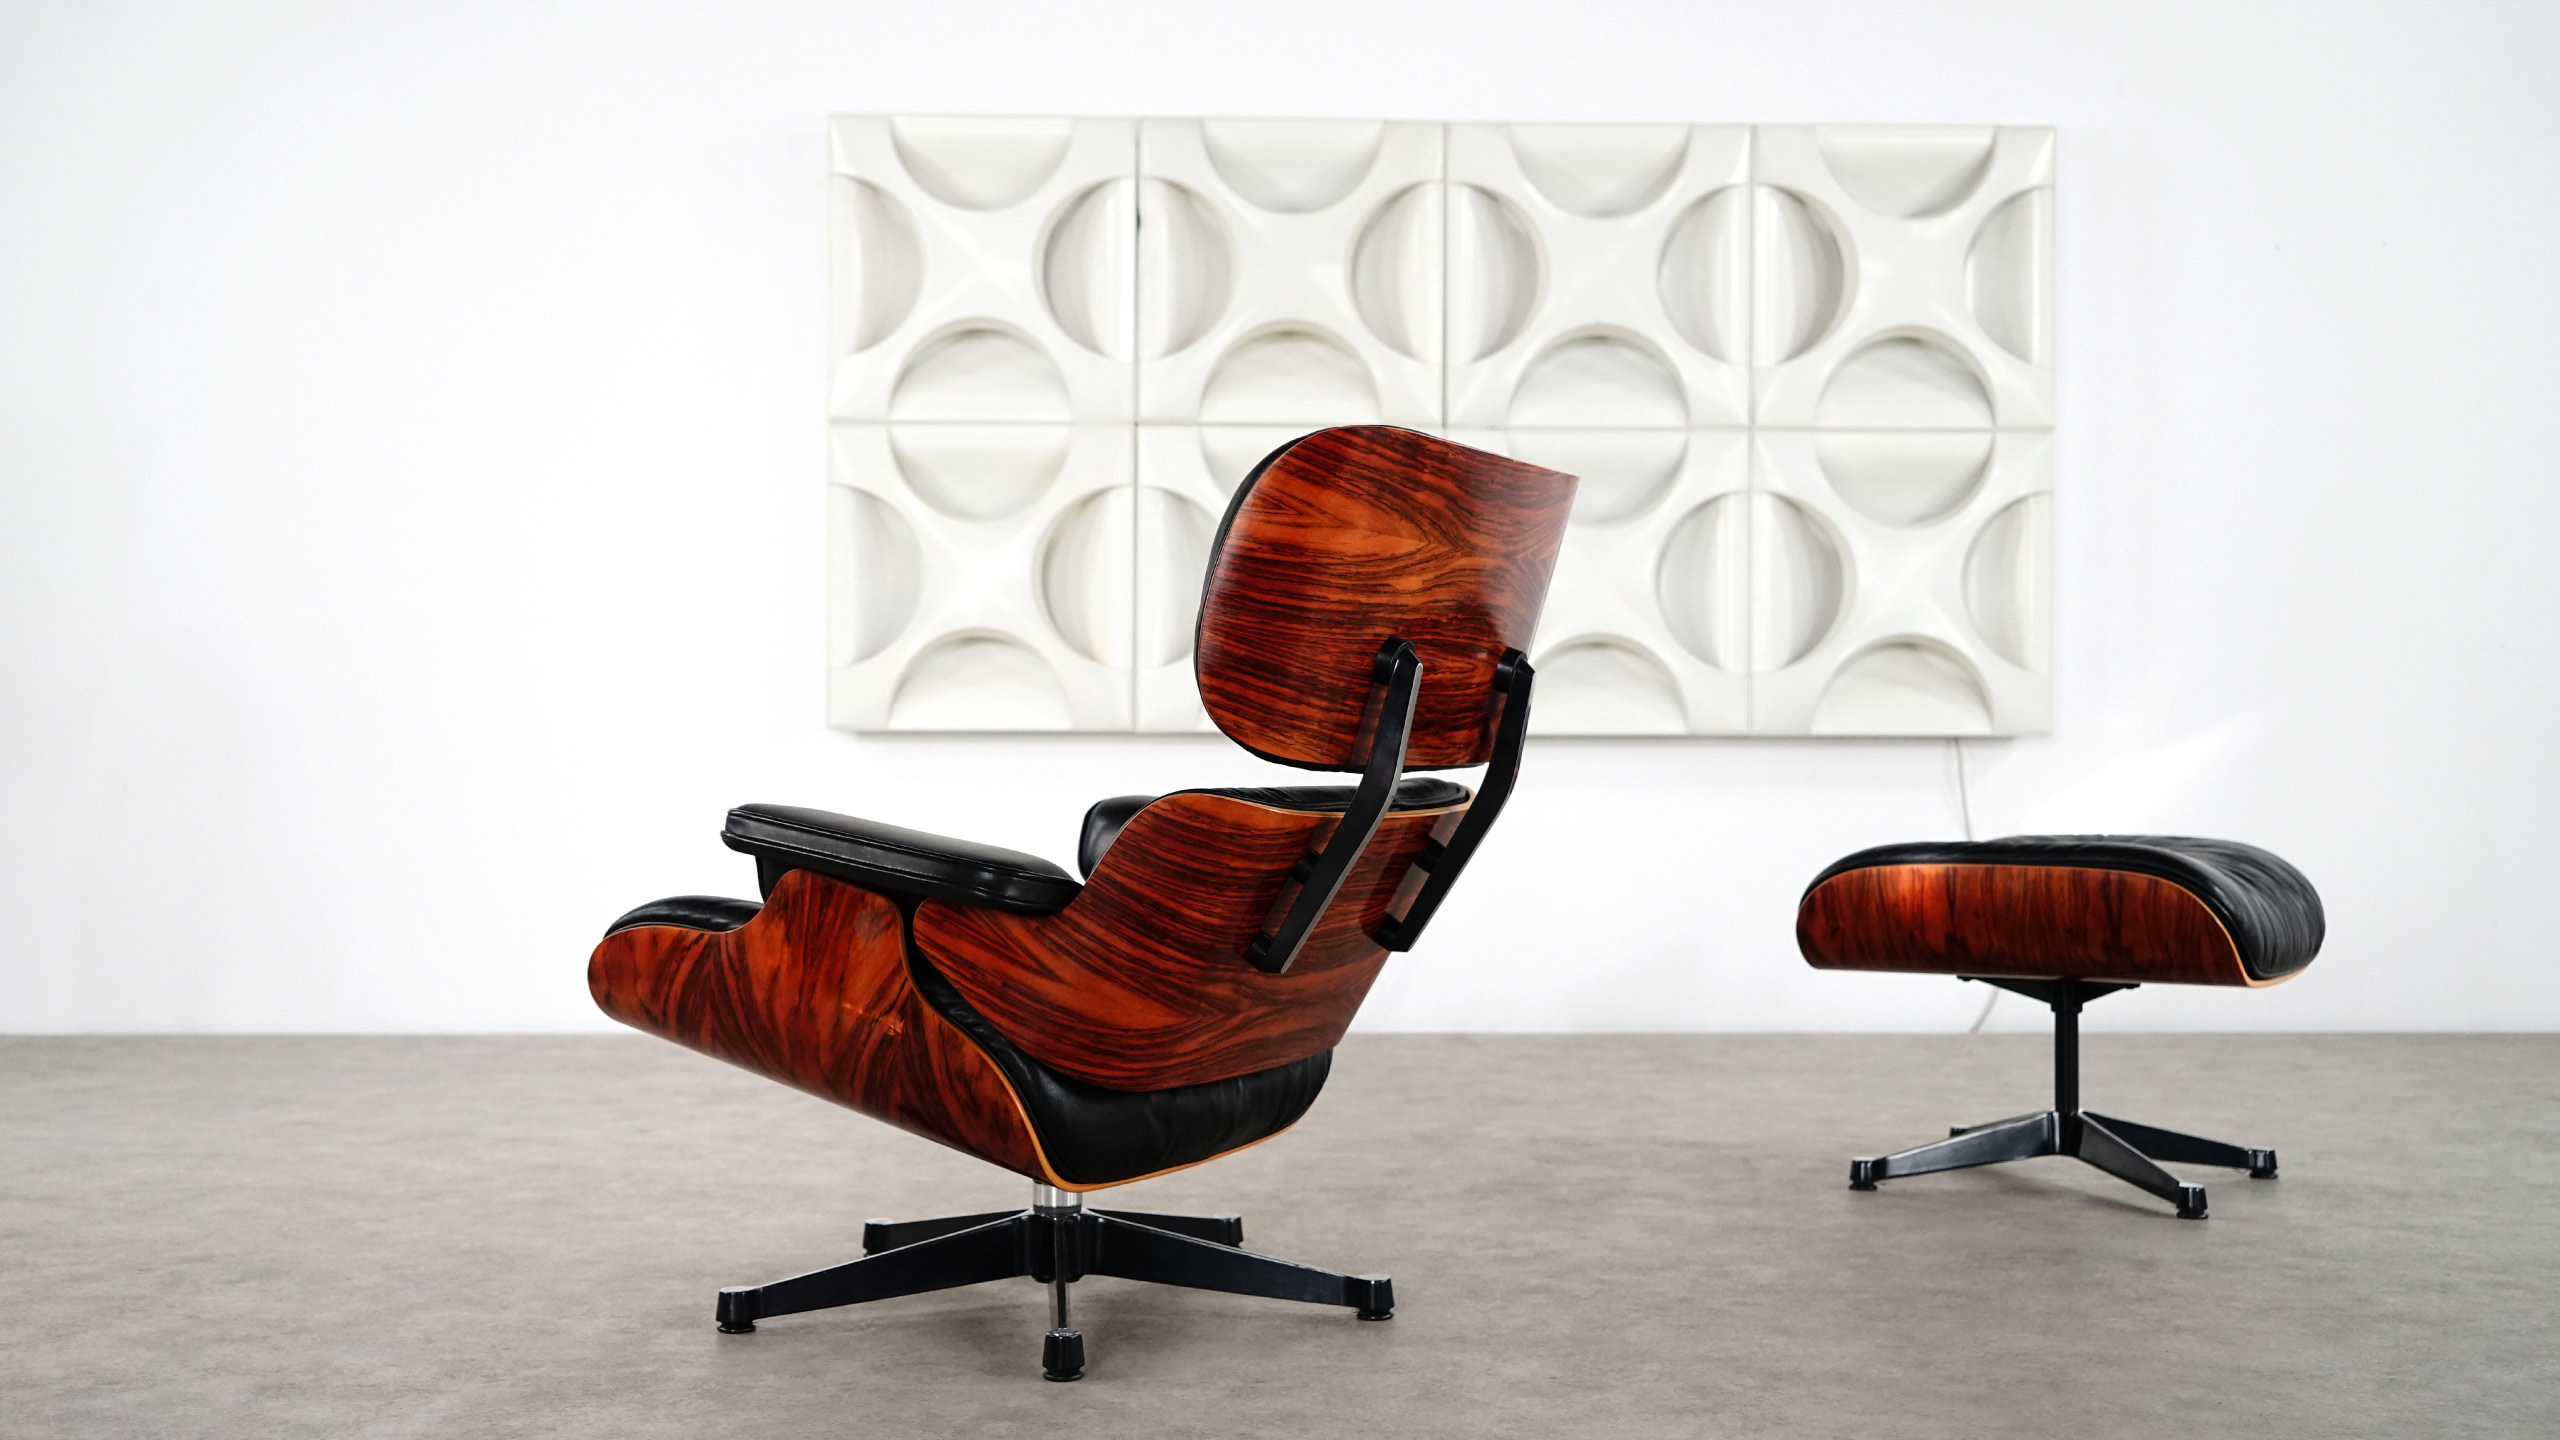 Charles eames lounge chair ottoman by vitra for Charles eames lounge chair nachbildung